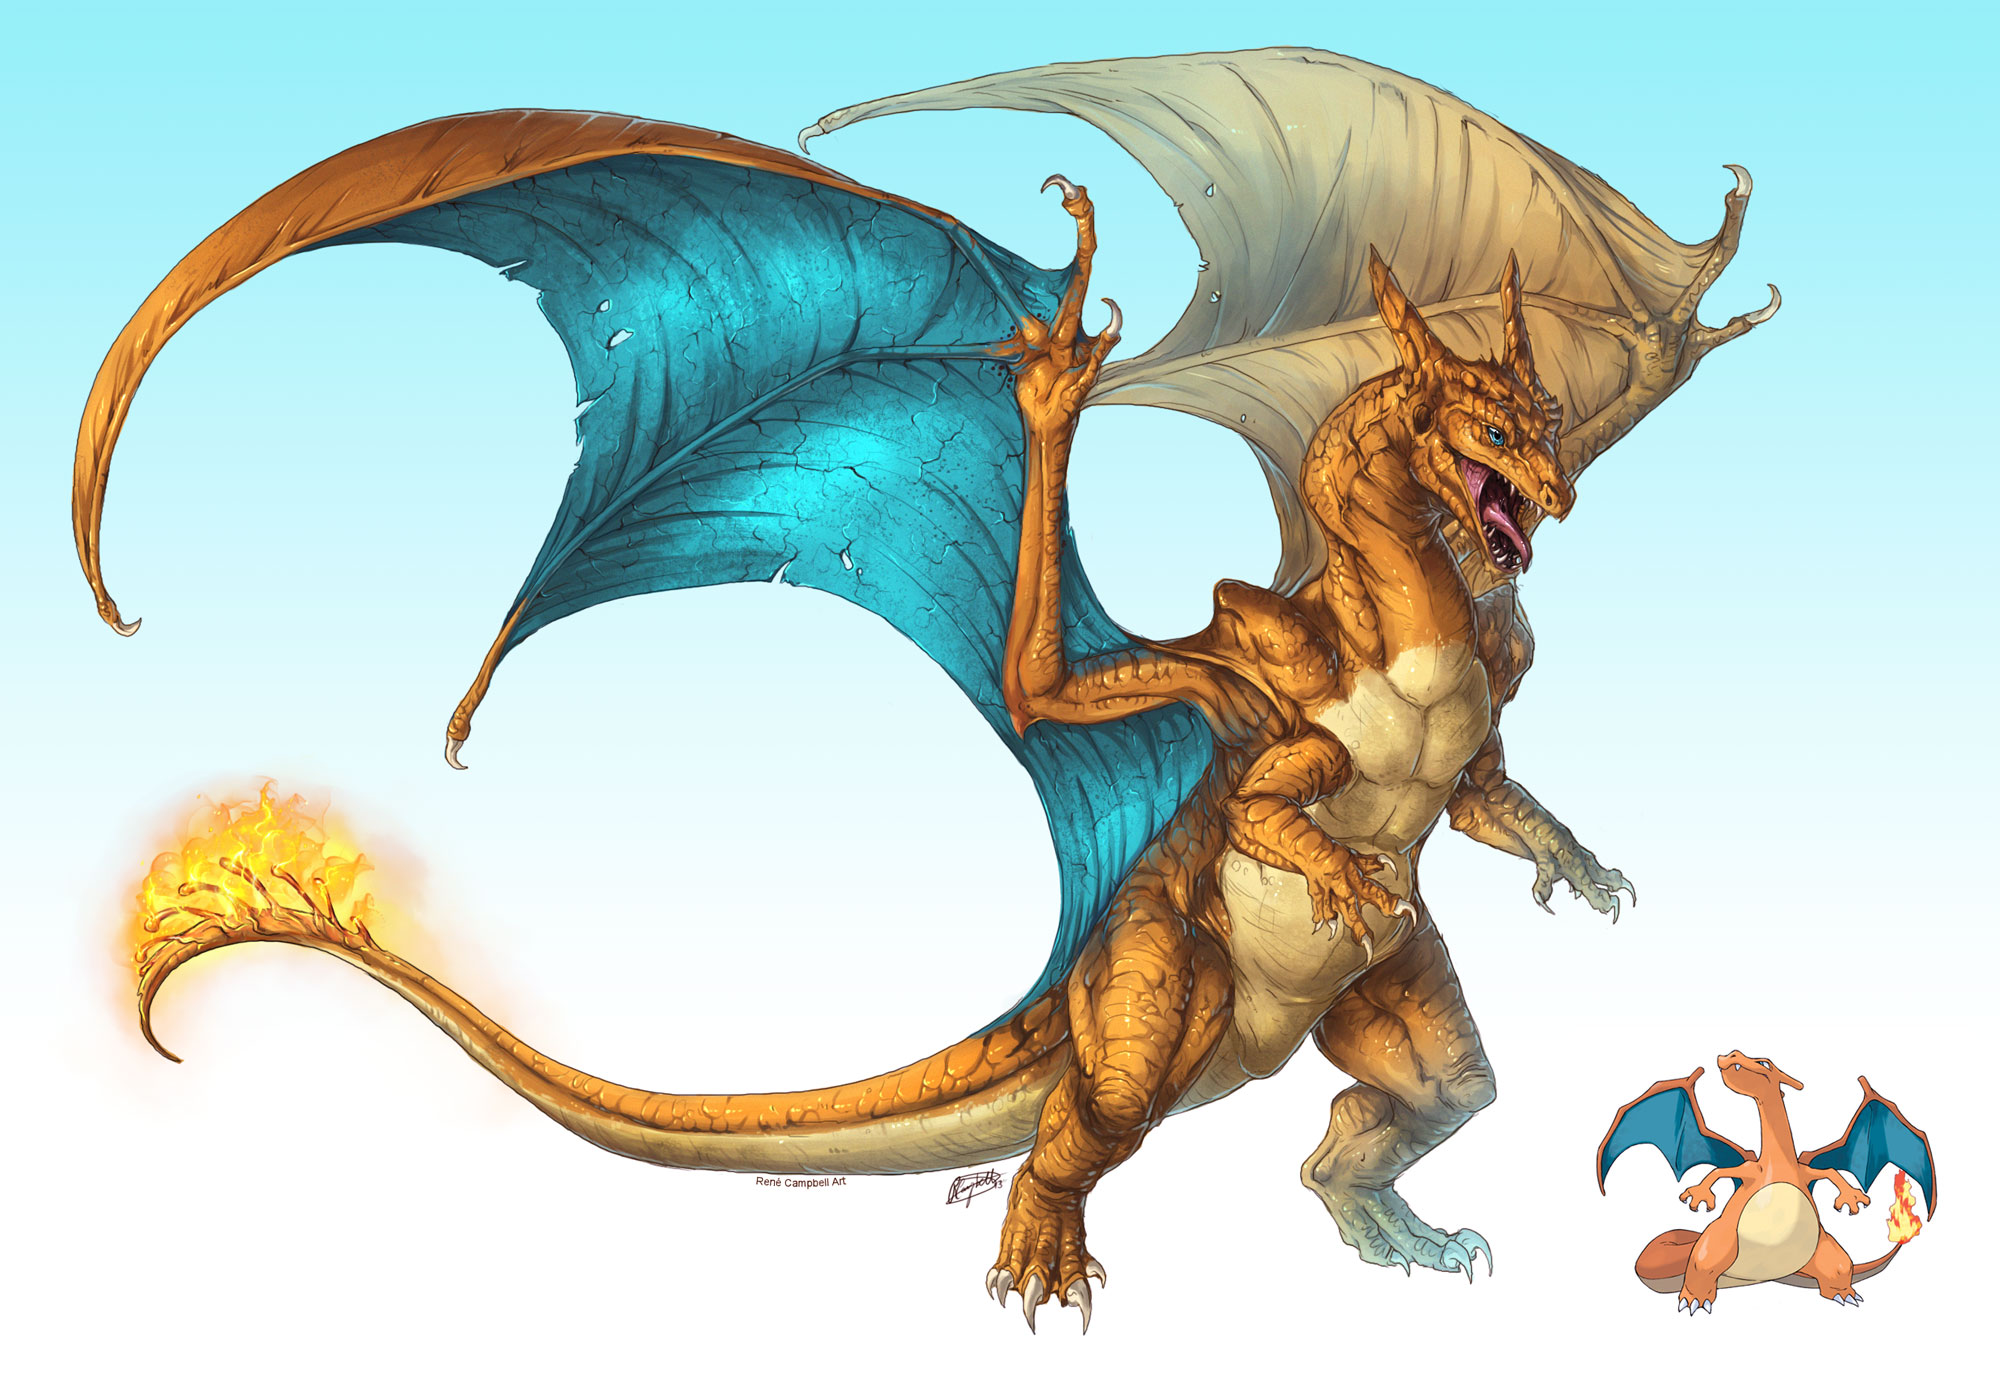 Realistic Pokemon Charizard 419351573